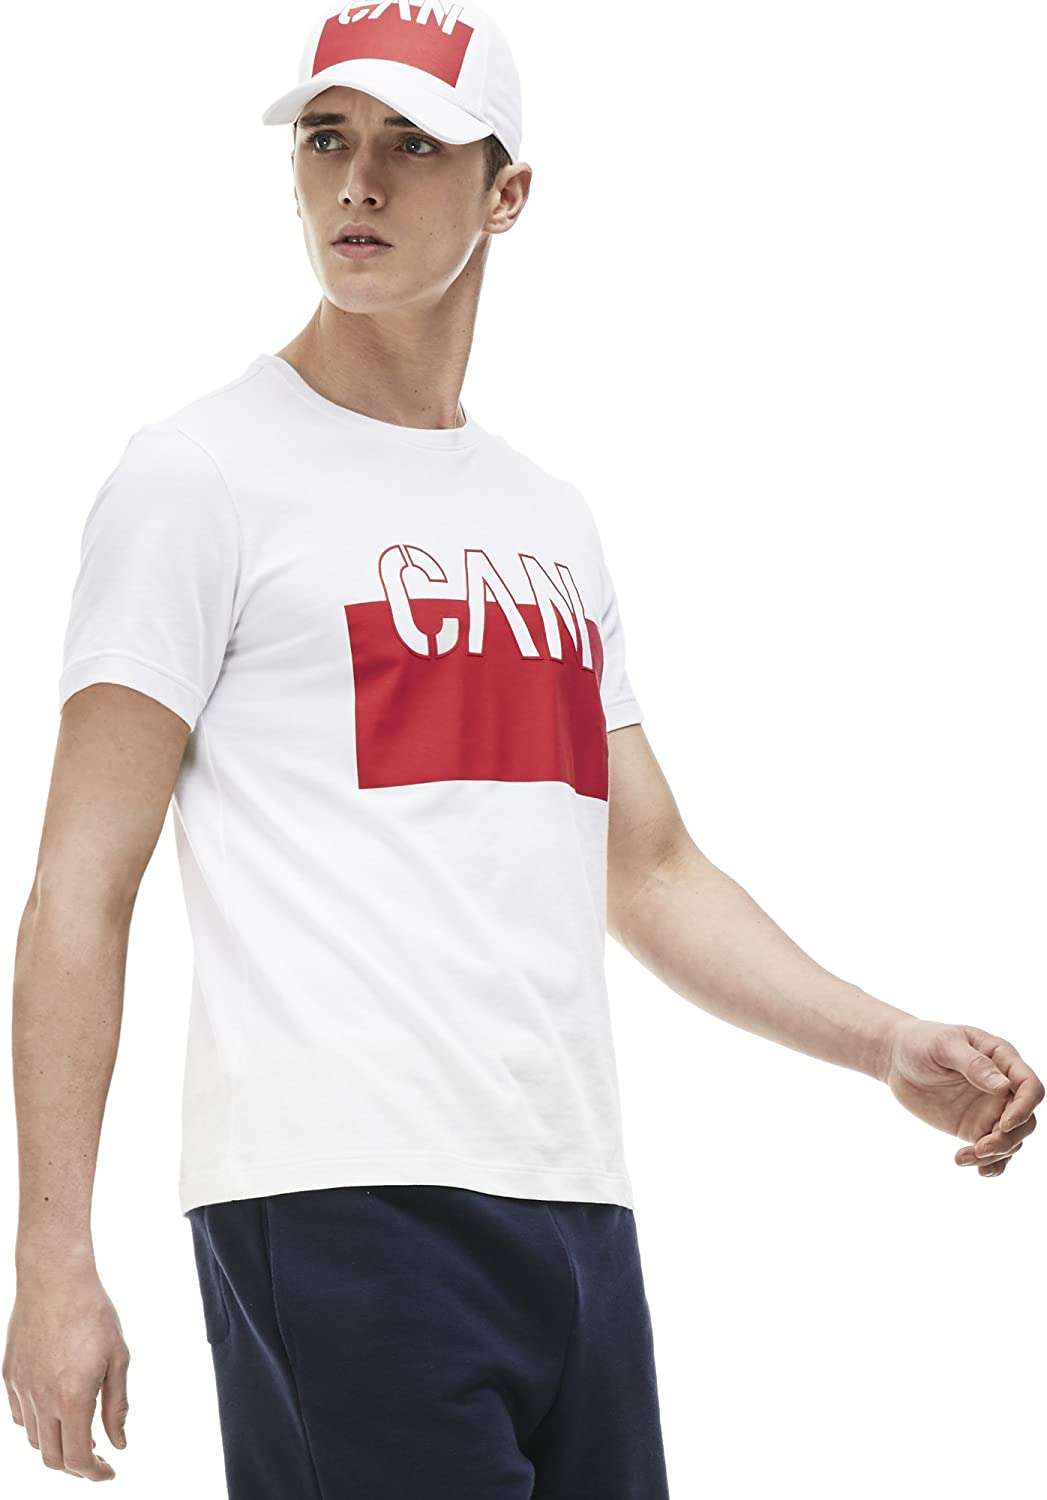 Lacoste Mens Sport World Supporter T-Shirt White//Cochineal-White-Coc Large